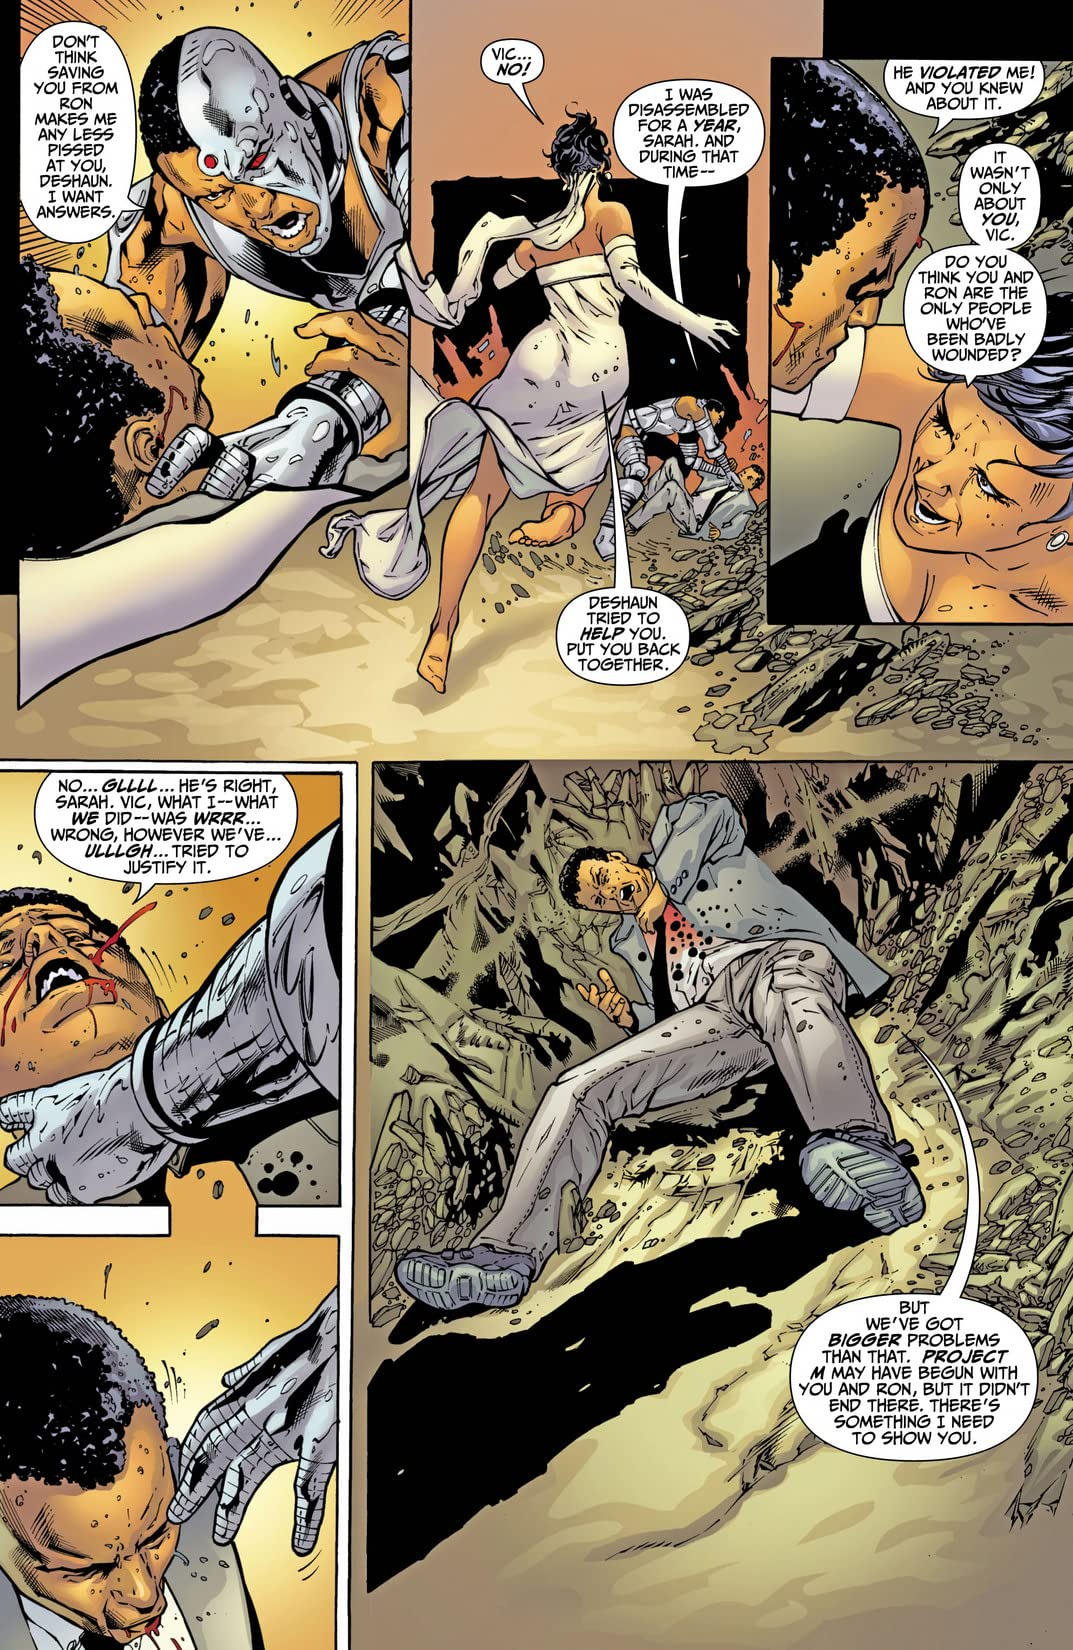 DC Special: Cyborg (2008) #4 (of 5)